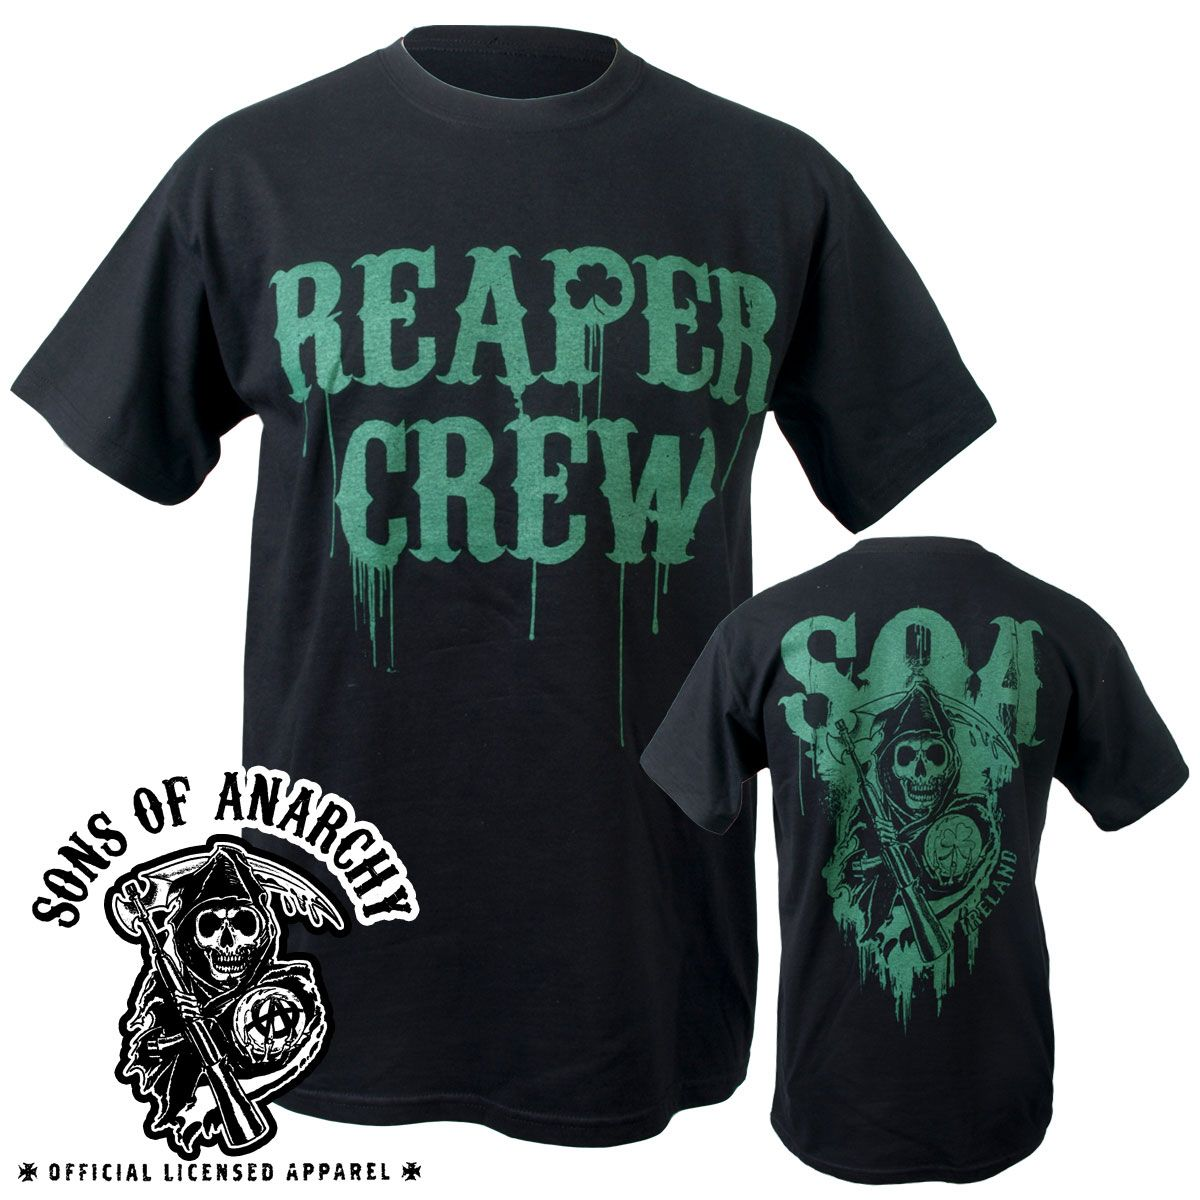 black bike tee with green reaper crew and clover on front. Black Bedroom Furniture Sets. Home Design Ideas